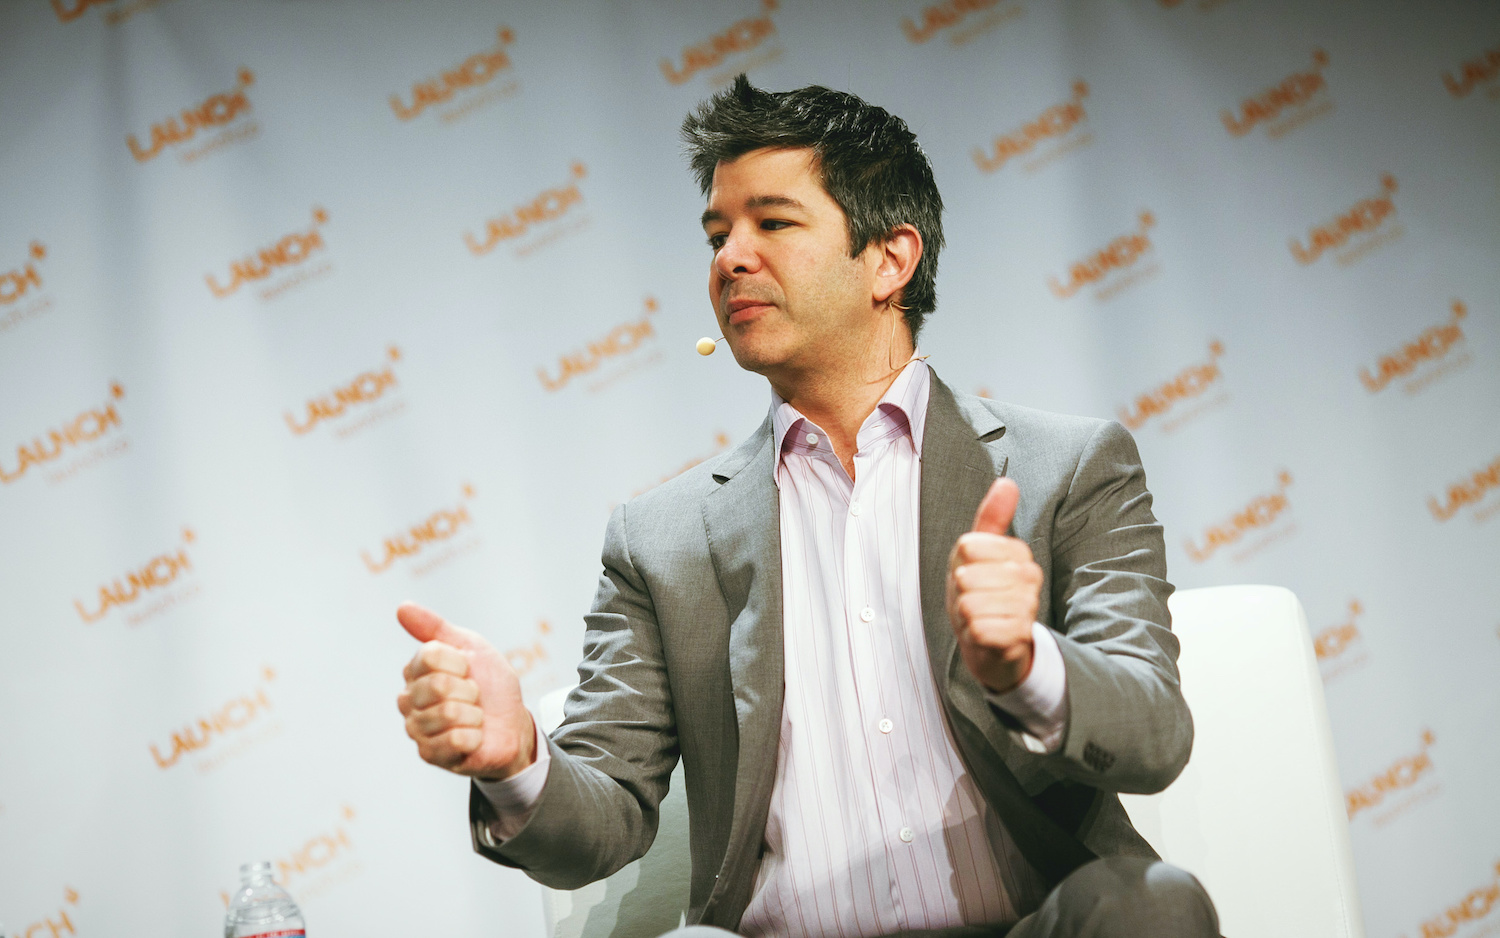 Travis Kalanick, Smart City Kitchens